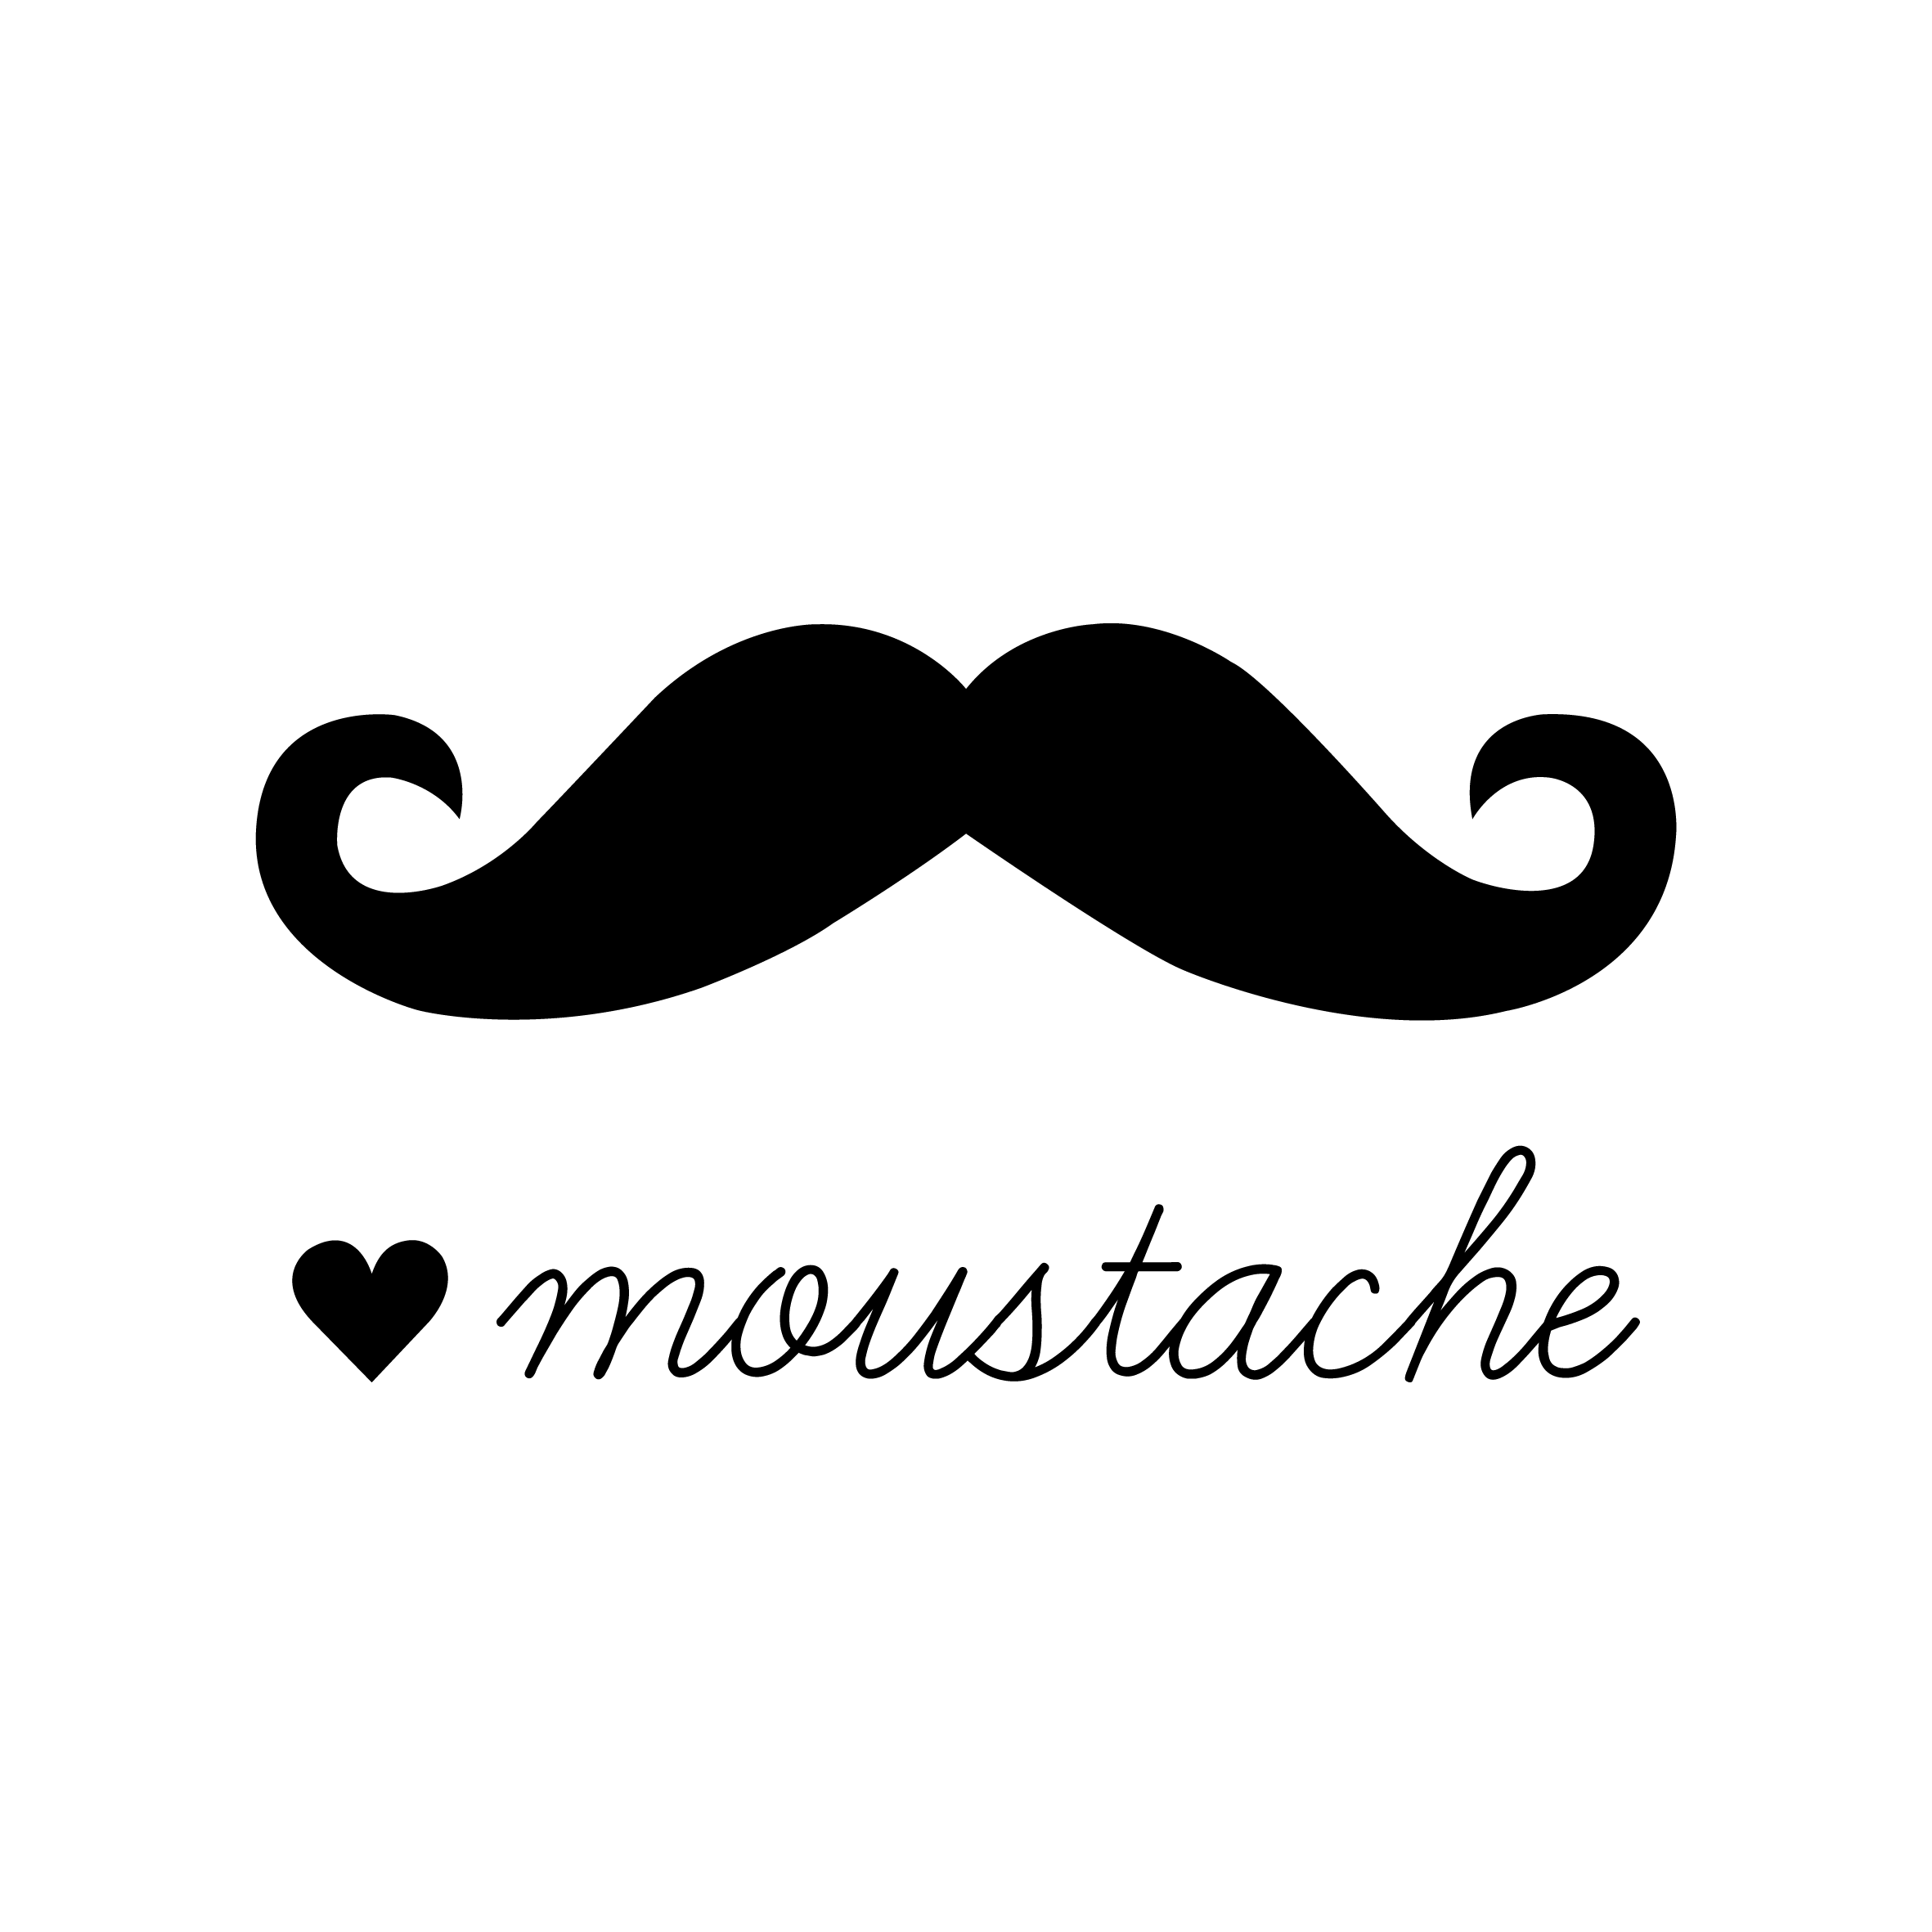 how to get a curly mustache